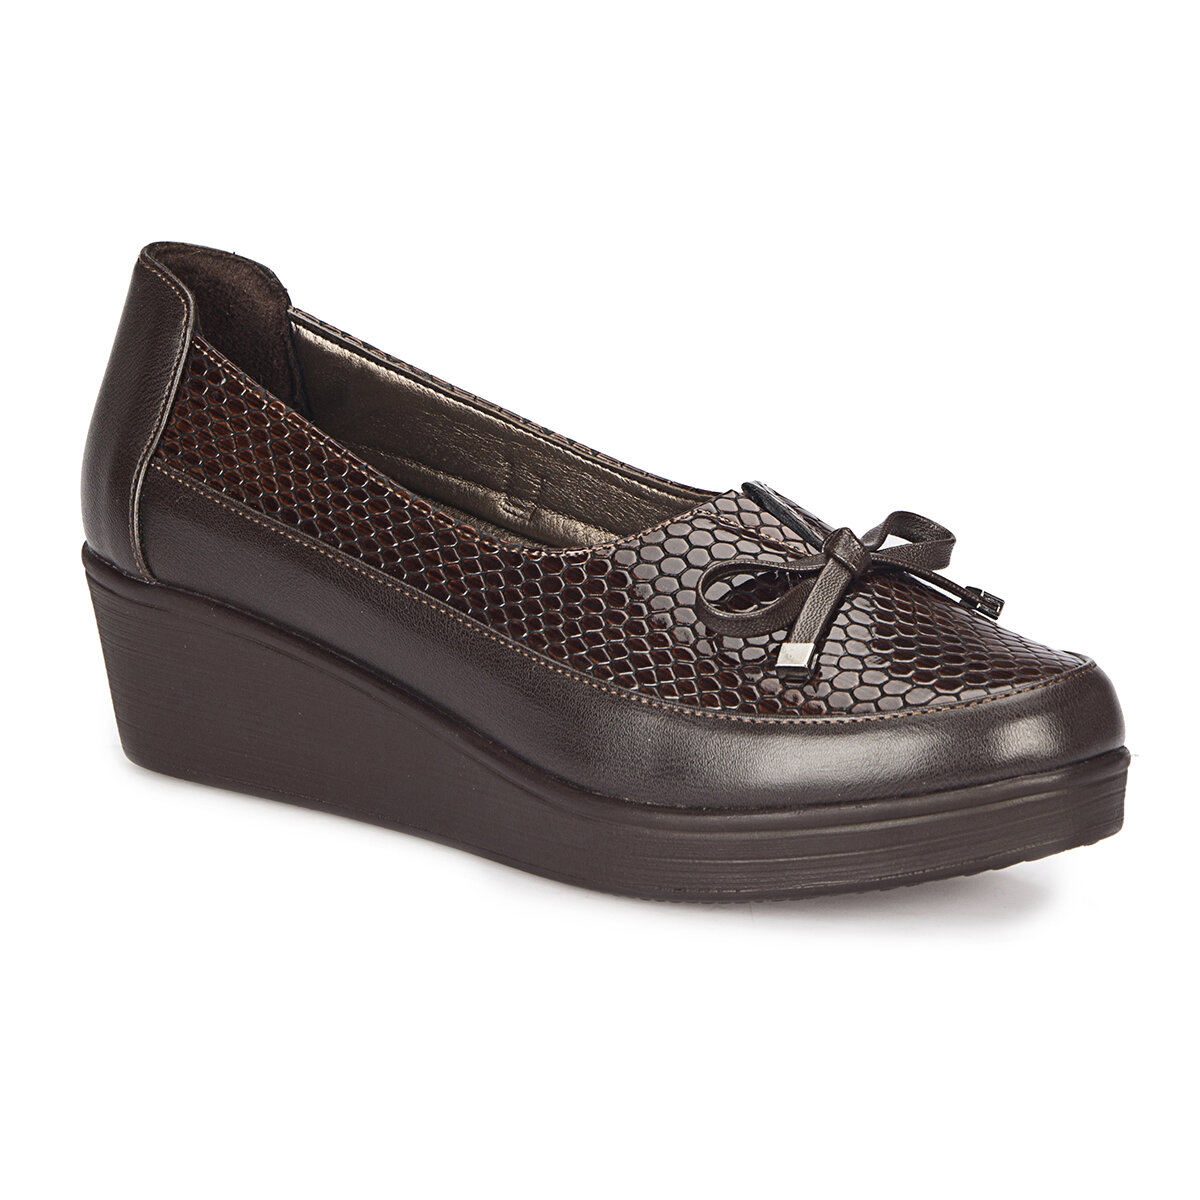 FLO 72. 158073.Z Brown Women 'S Shoes Polaris